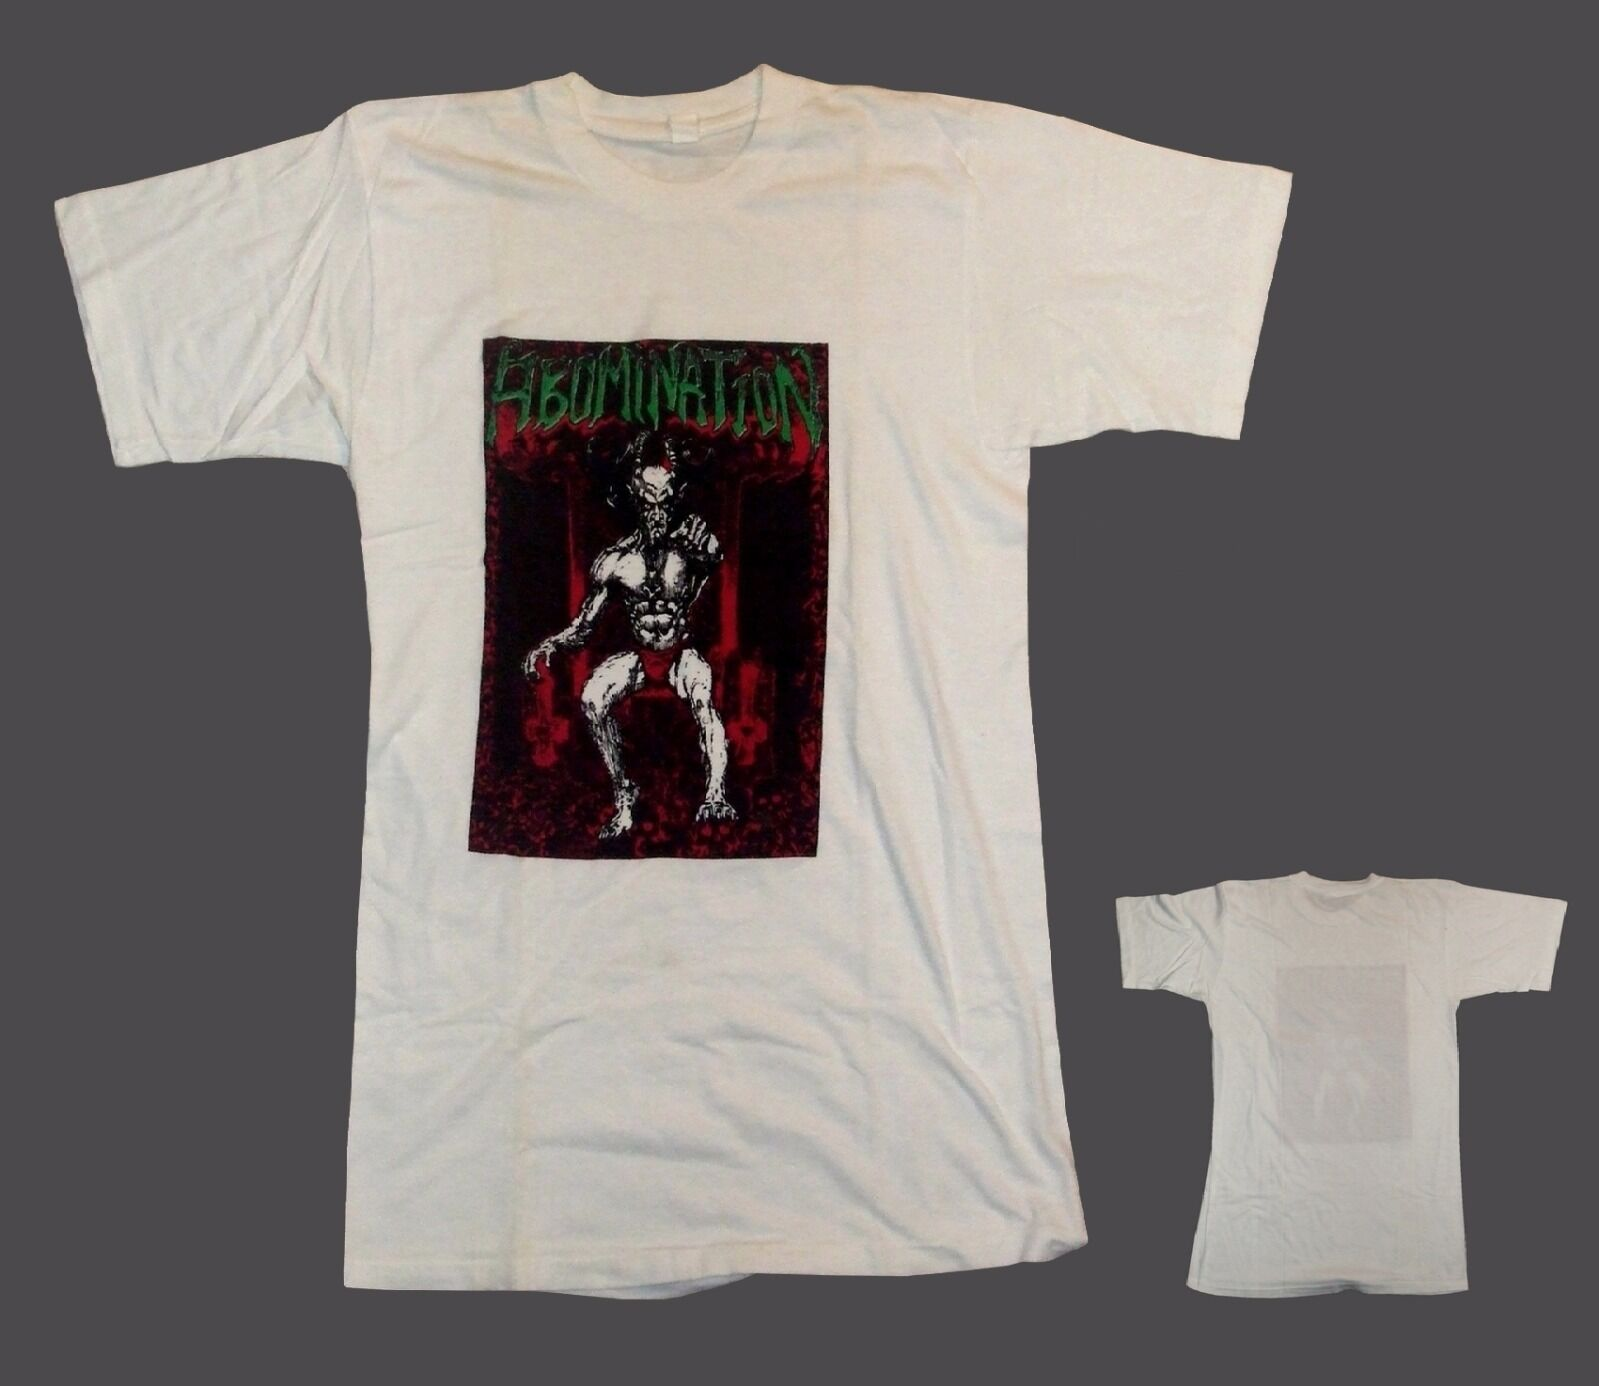 Abomination (Usa) - Demo 1988 T-Shirt Extremely rare.